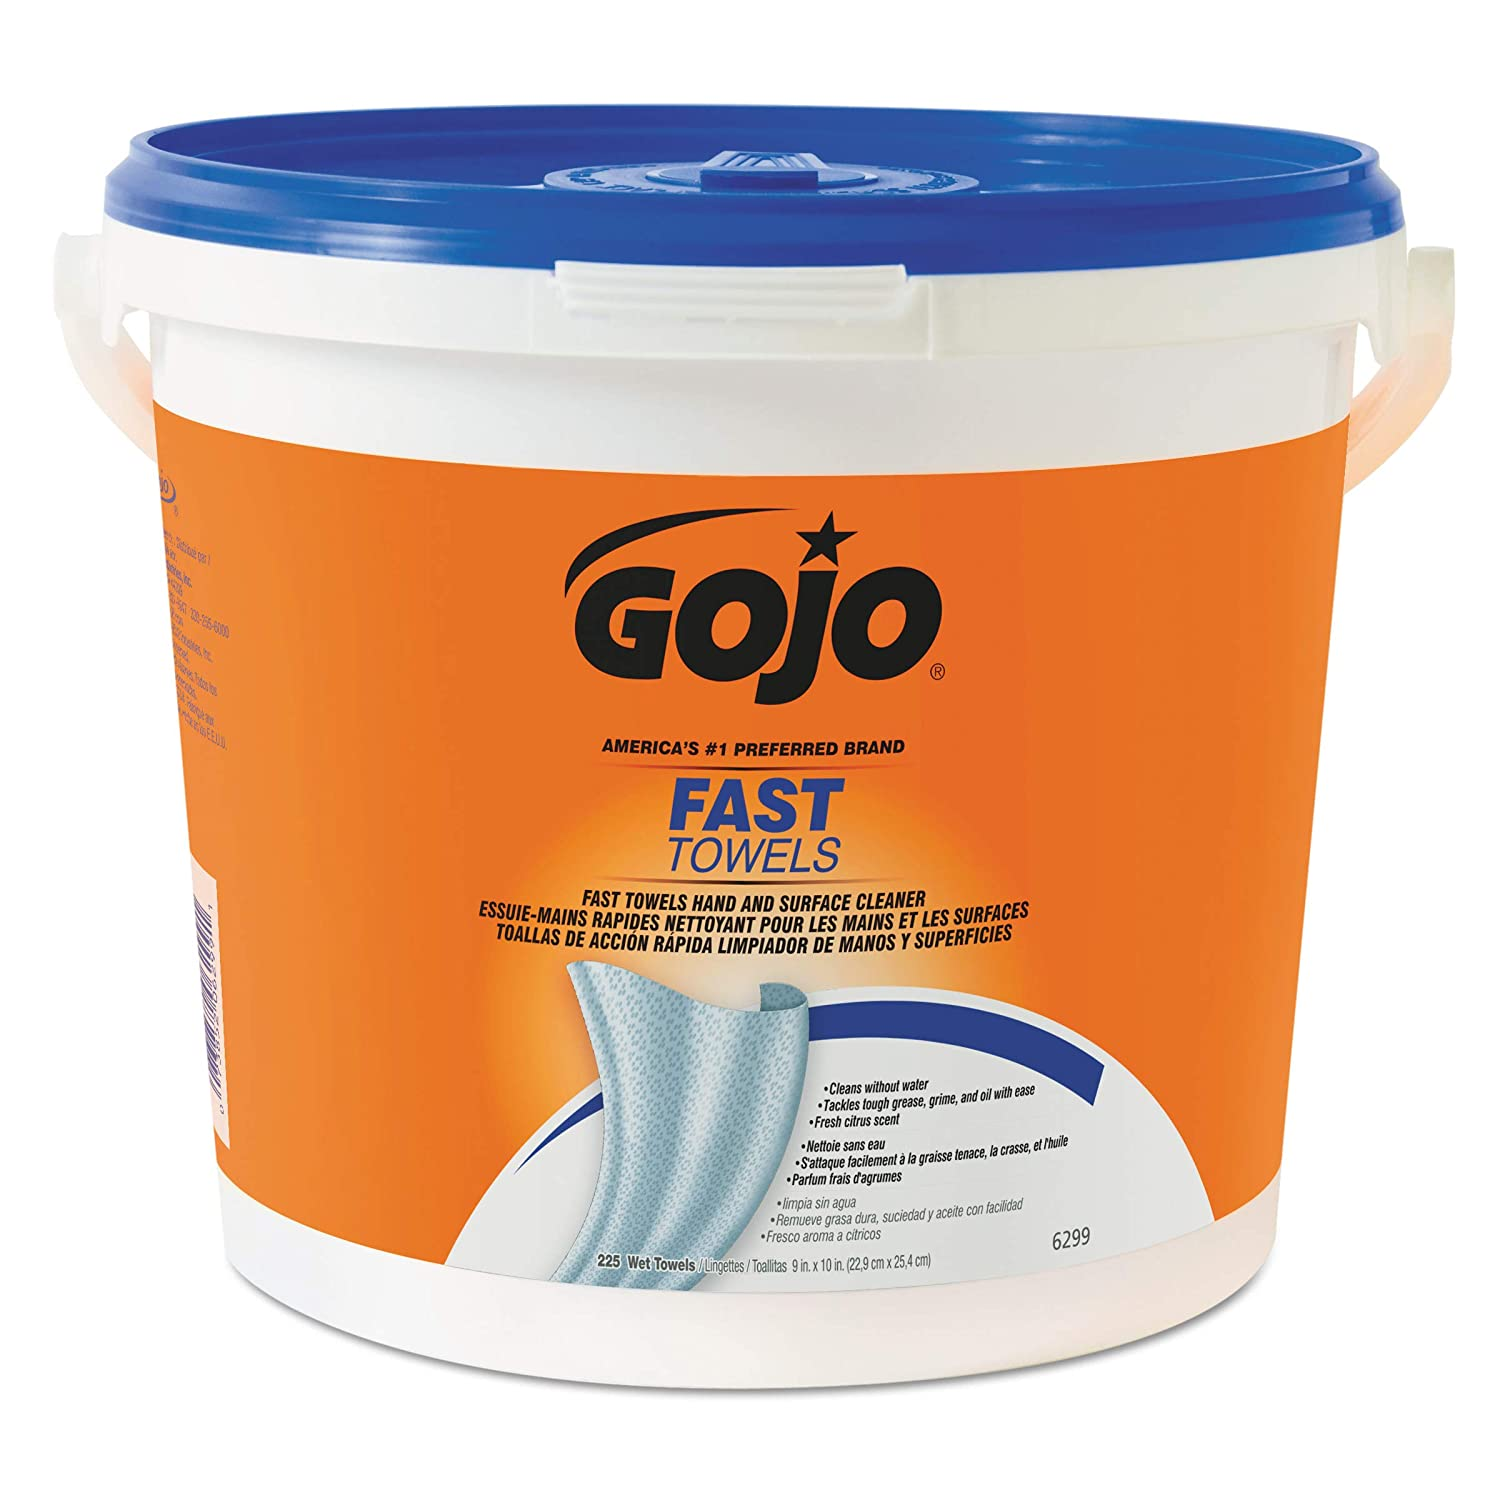 GOJO FAST TOWELS Fresh Citrus Scent 225 Count Large Multi Purpose Single Textured Wet Towel Bucket Pack of 2 6299 02